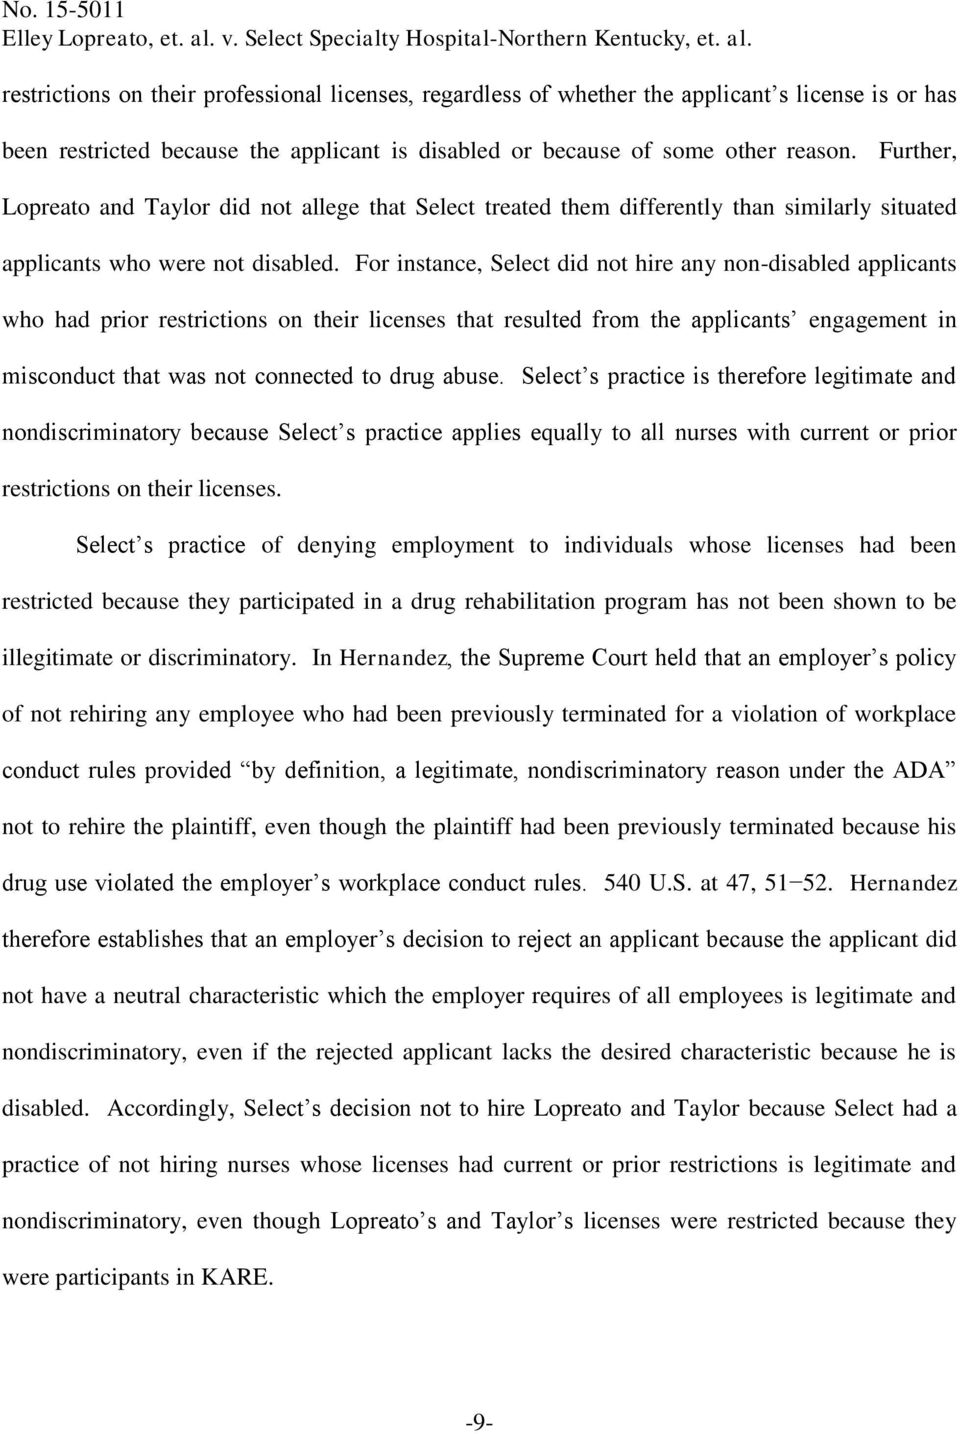 For instance, Select did not hire any non-disabled applicants who had prior restrictions on their licenses that resulted from the applicants engagement in misconduct that was not connected to drug